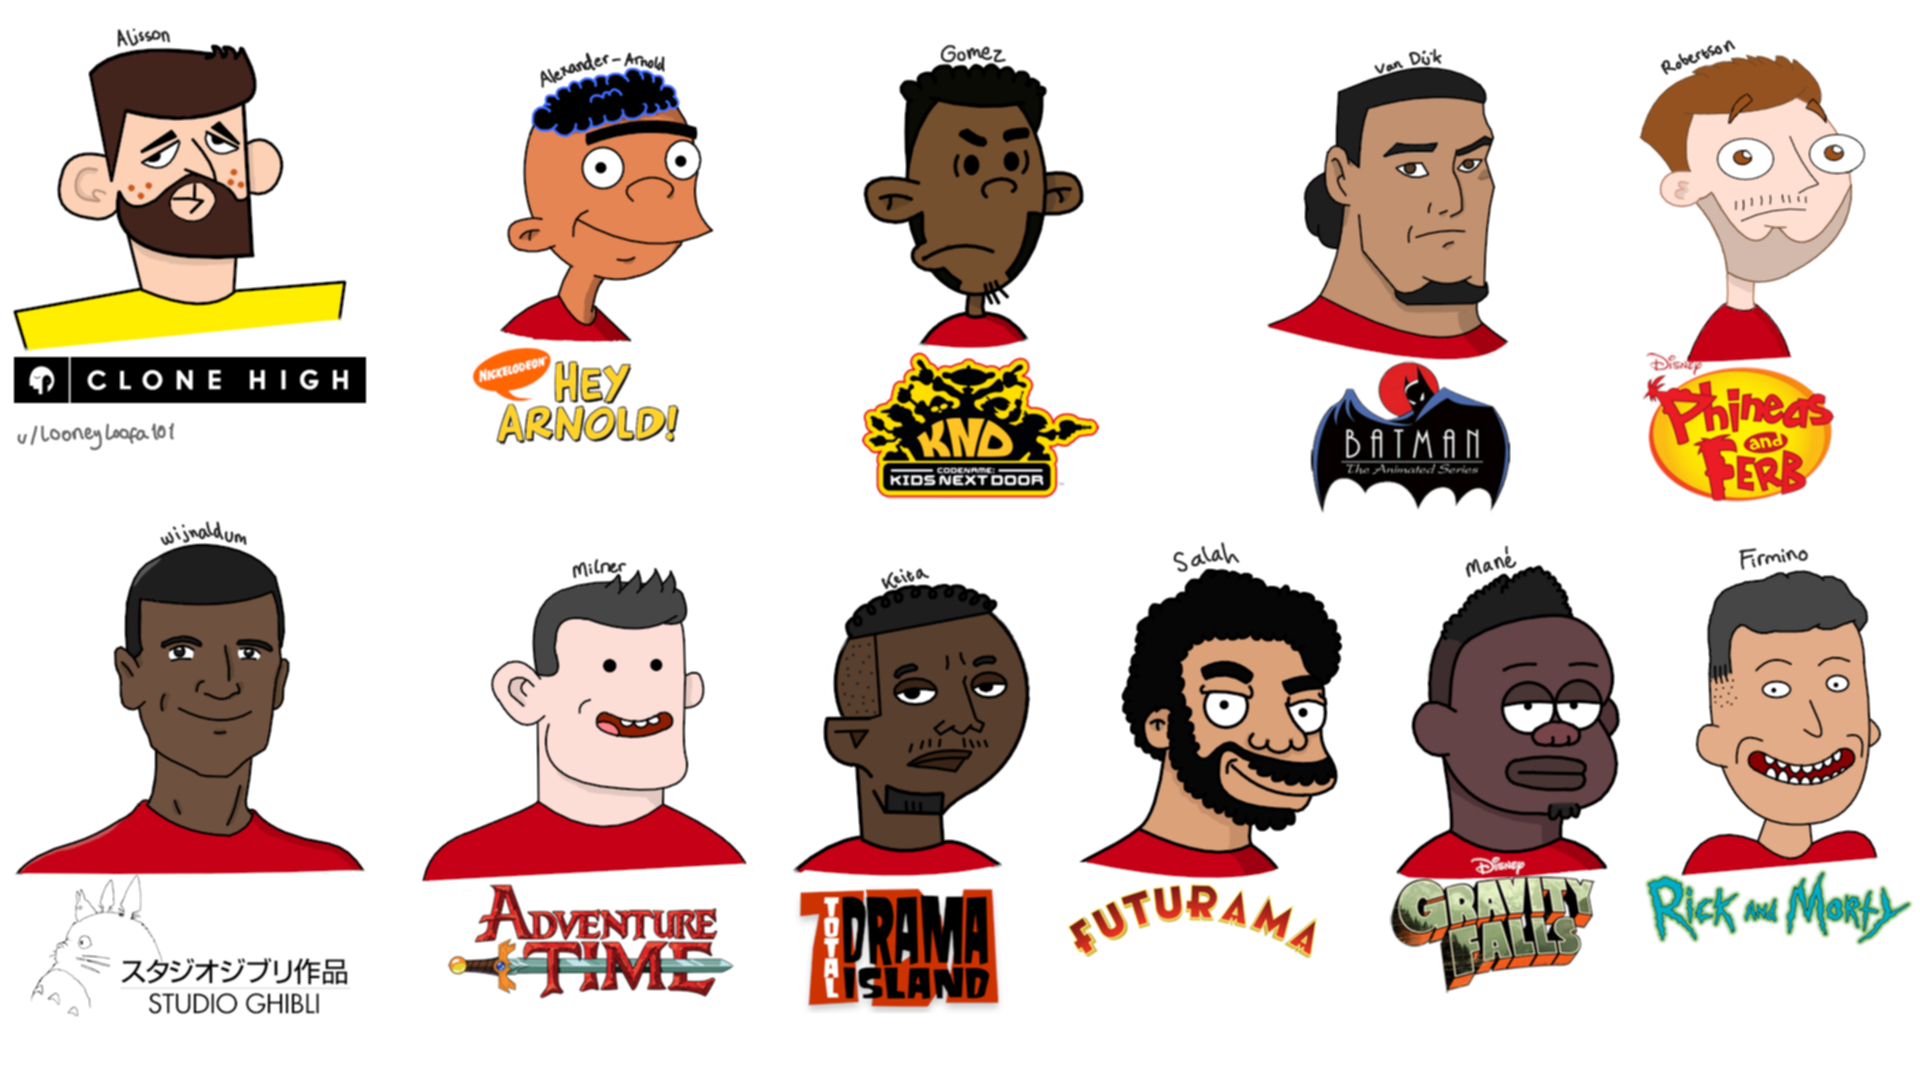 Artwork depicting Liverpool footballers as cartoons in varying styles